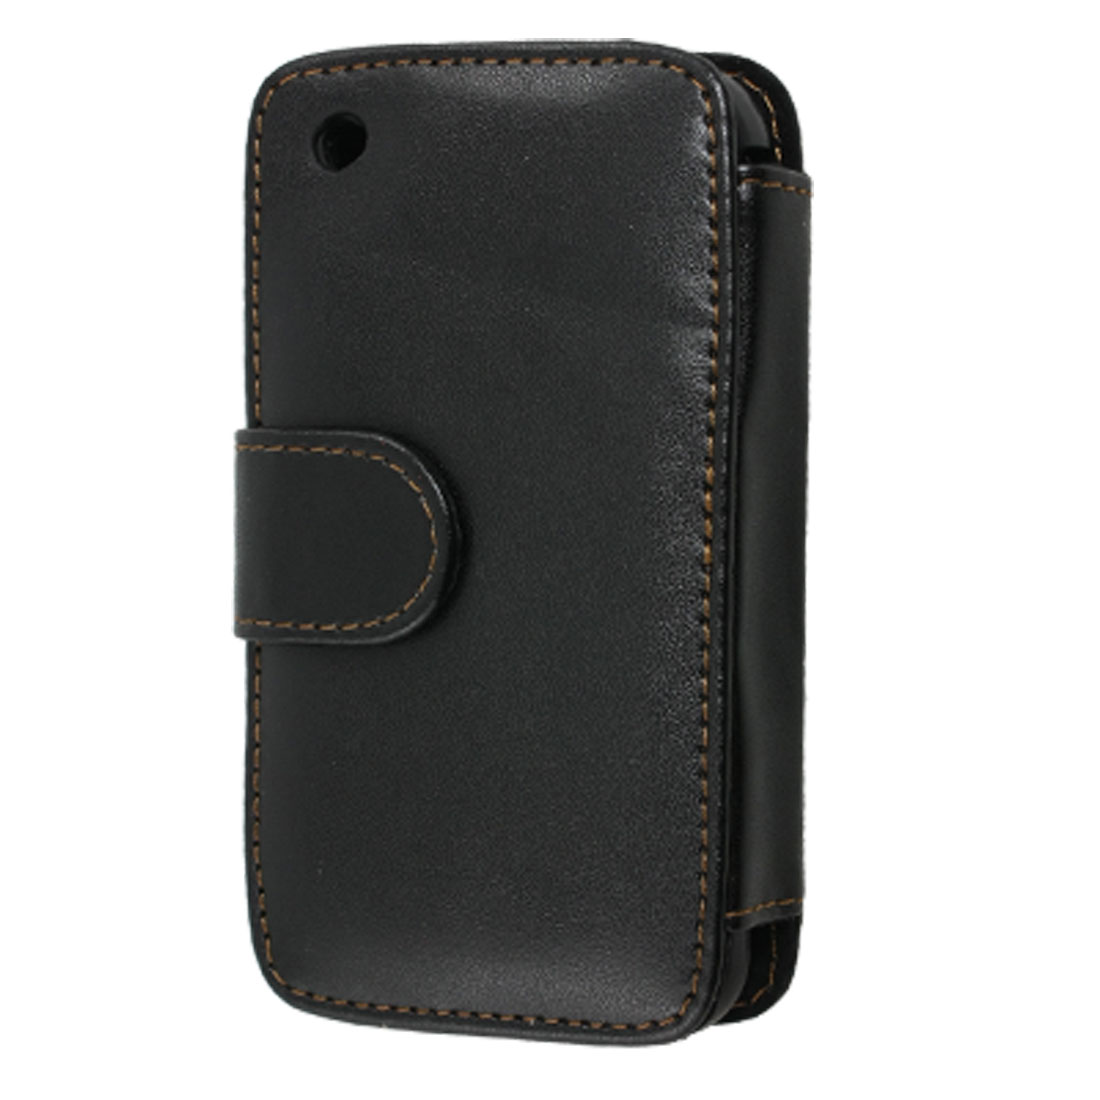 Protective Black Faux Leather Pouch Holder for iPhone 3G